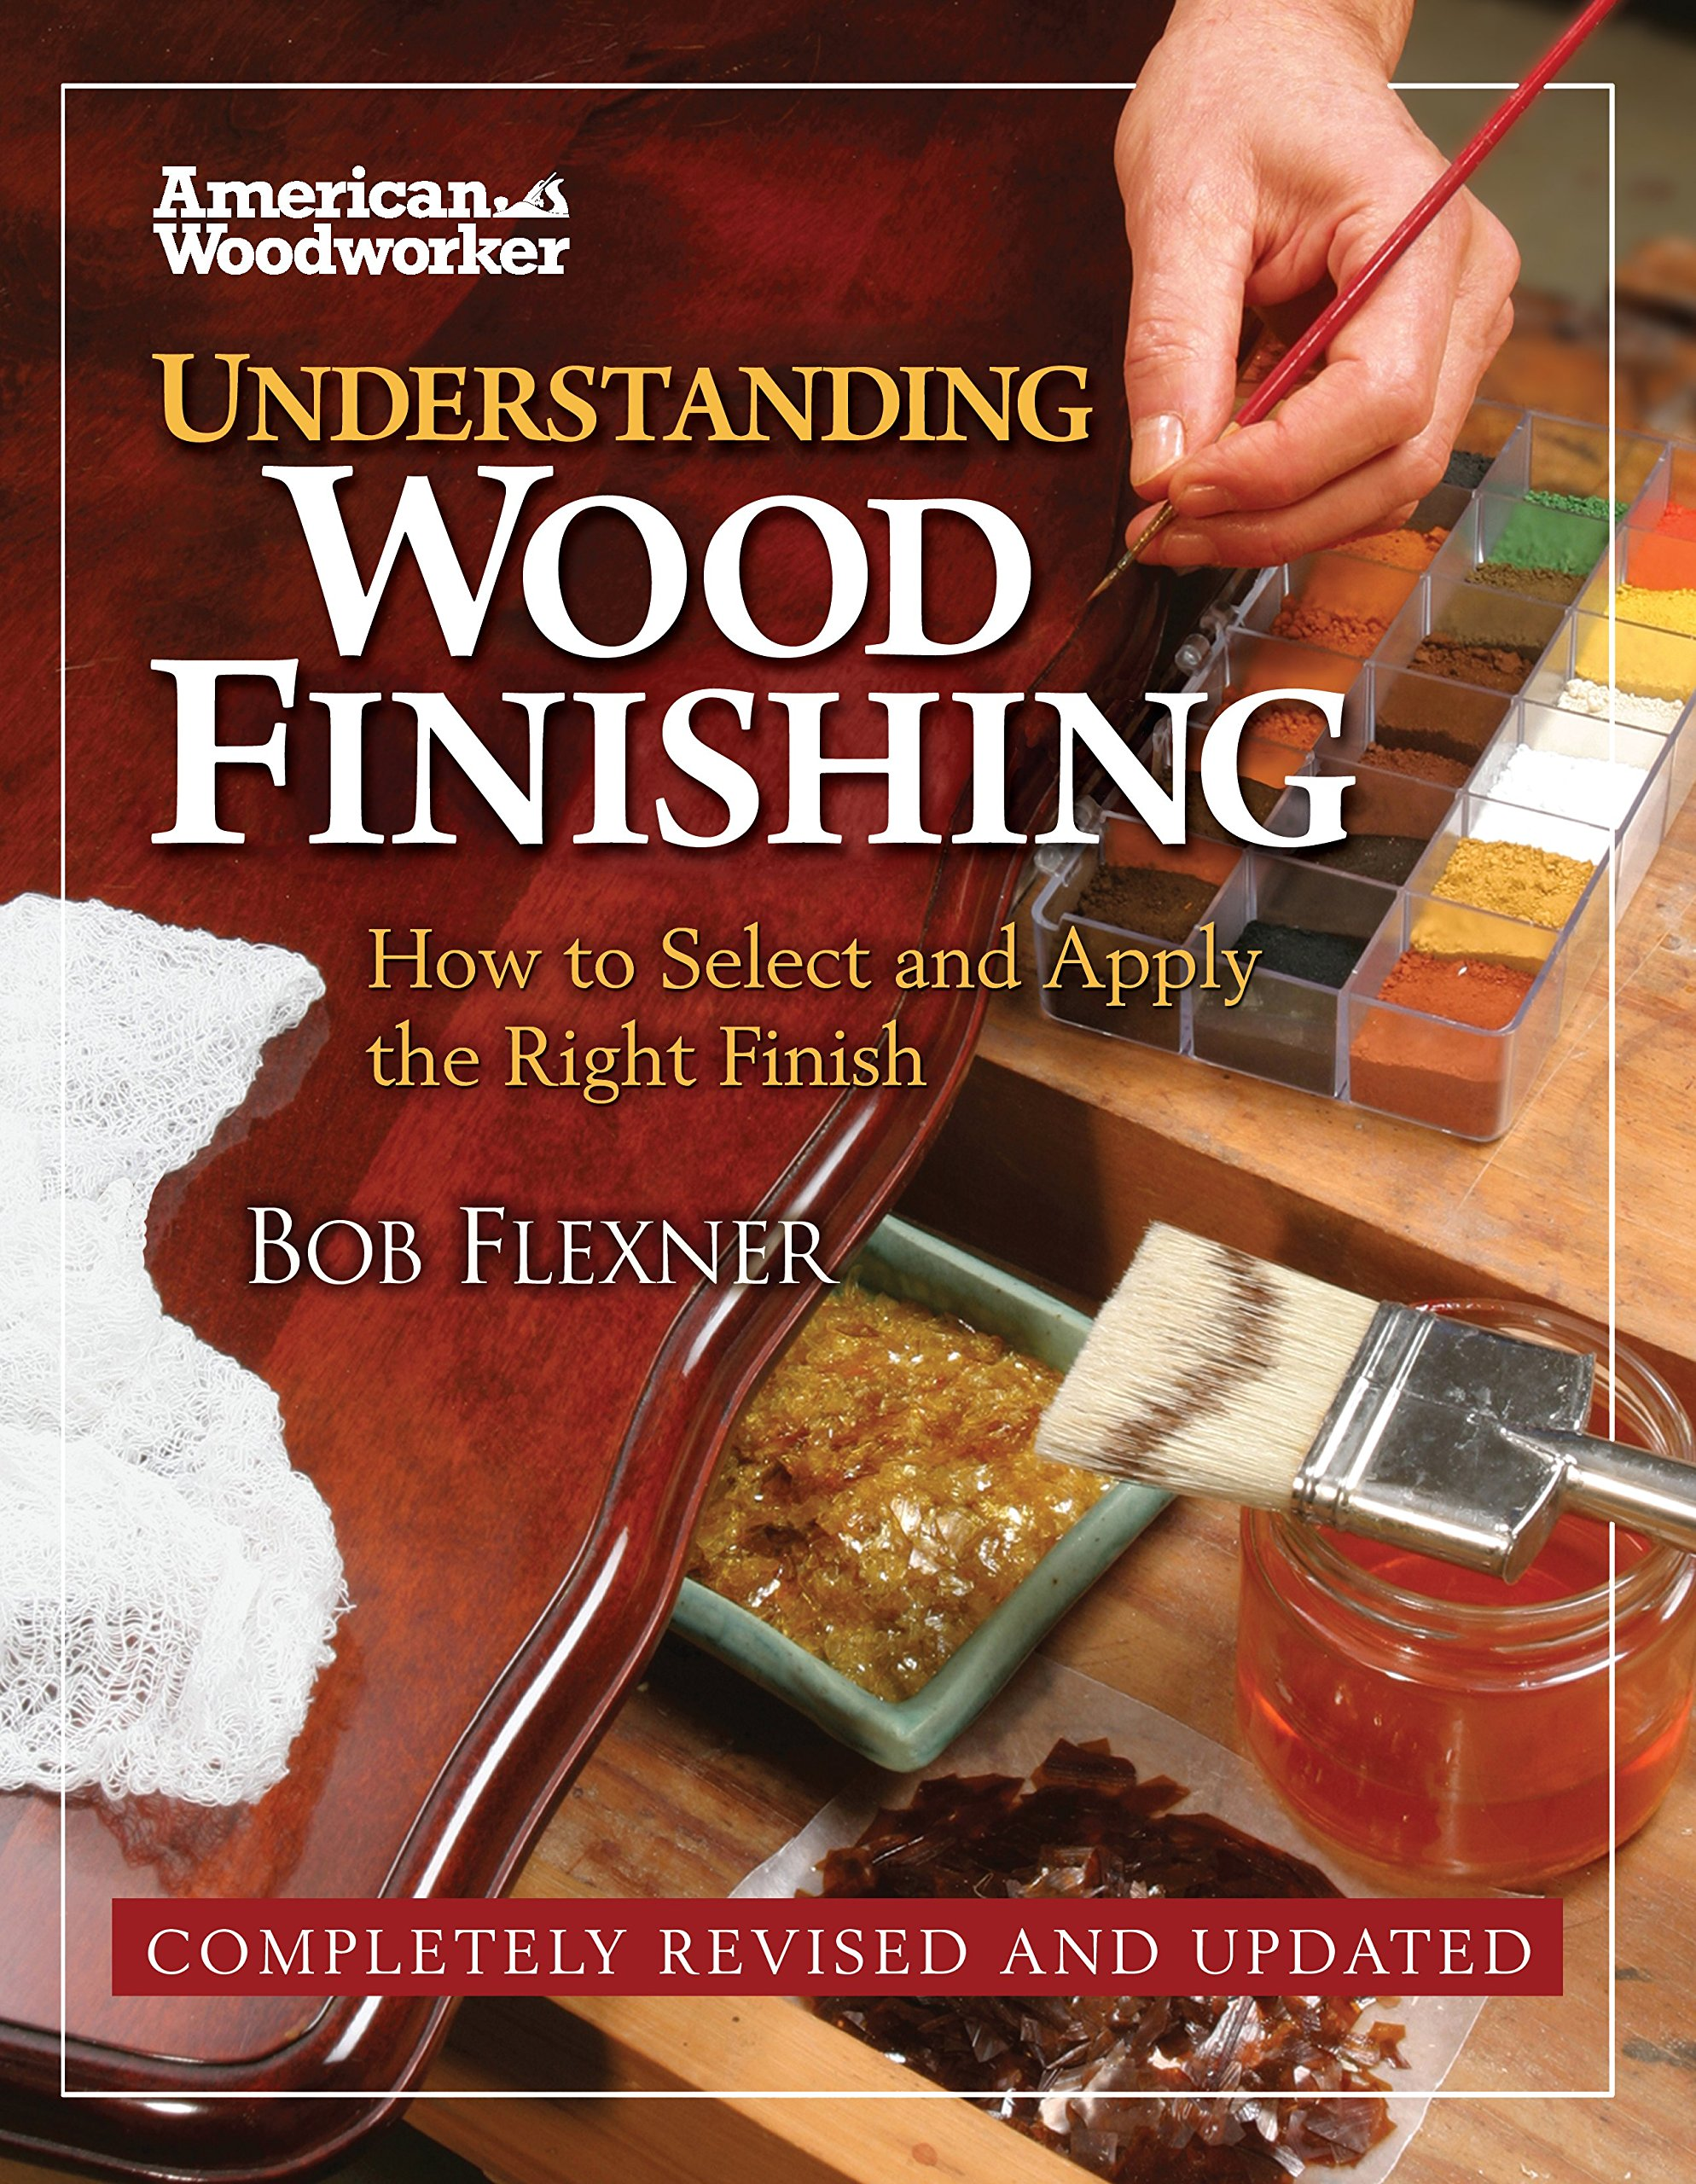 Understanding Wood Finishing: How to Select and Apply the Right Finish (Fox Chapel Publishing) Practical, Comprehensive Guide; Over 300 Color Photos and 40 Reference Tables & Troubleshooting Guides Hardcover – October 15, 2010 Bob Flexner 1565235487 CR